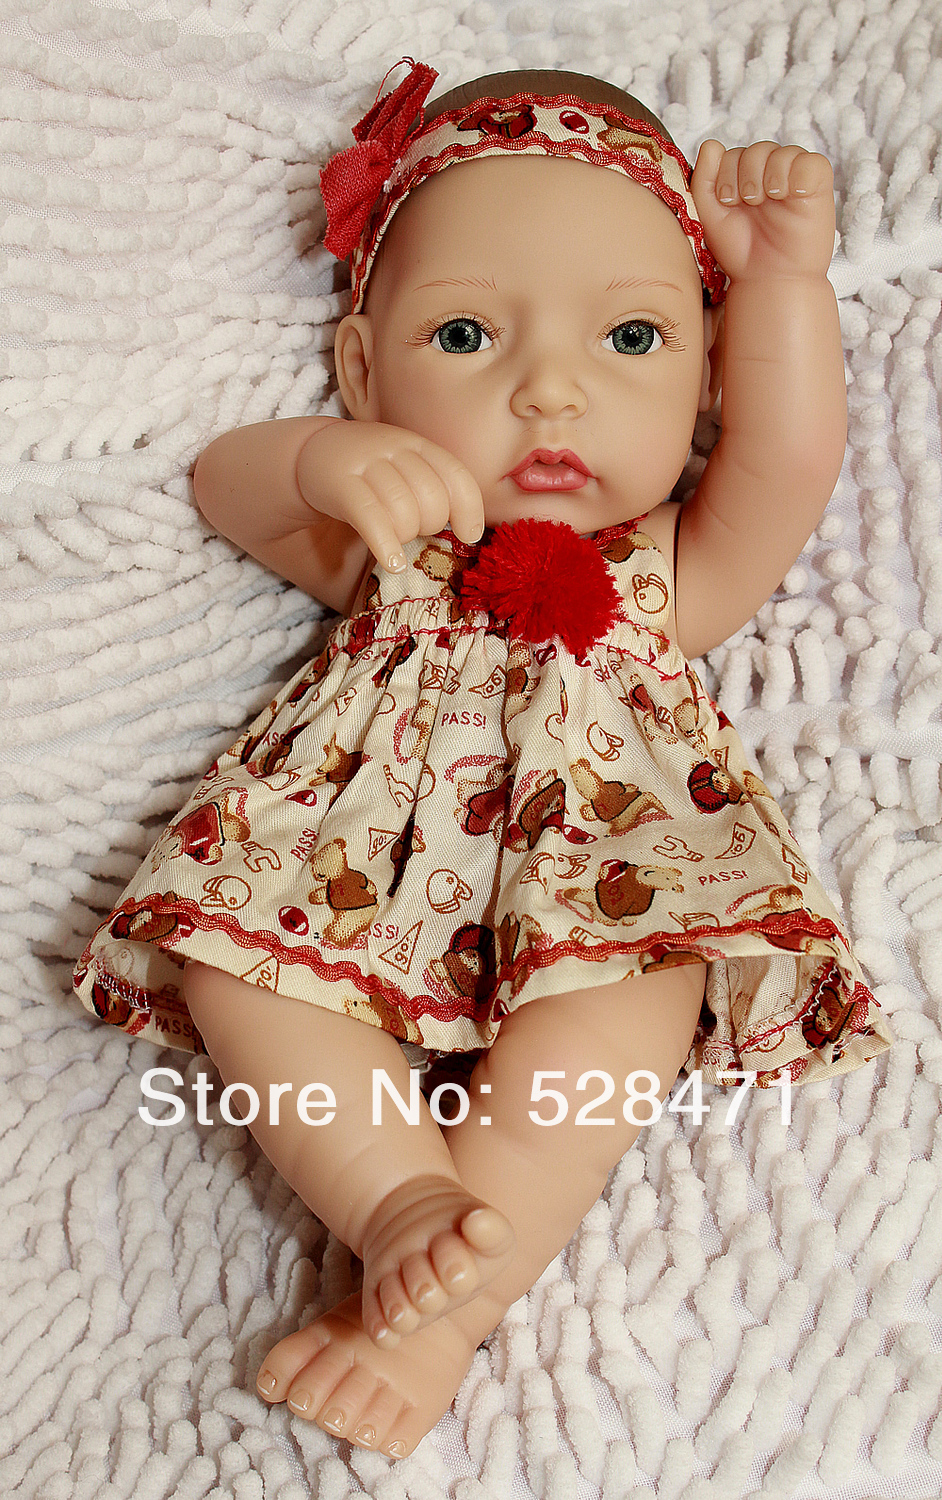 Wholesale 10 Inches Full Mini Vinly Reborn Baby Dolls For